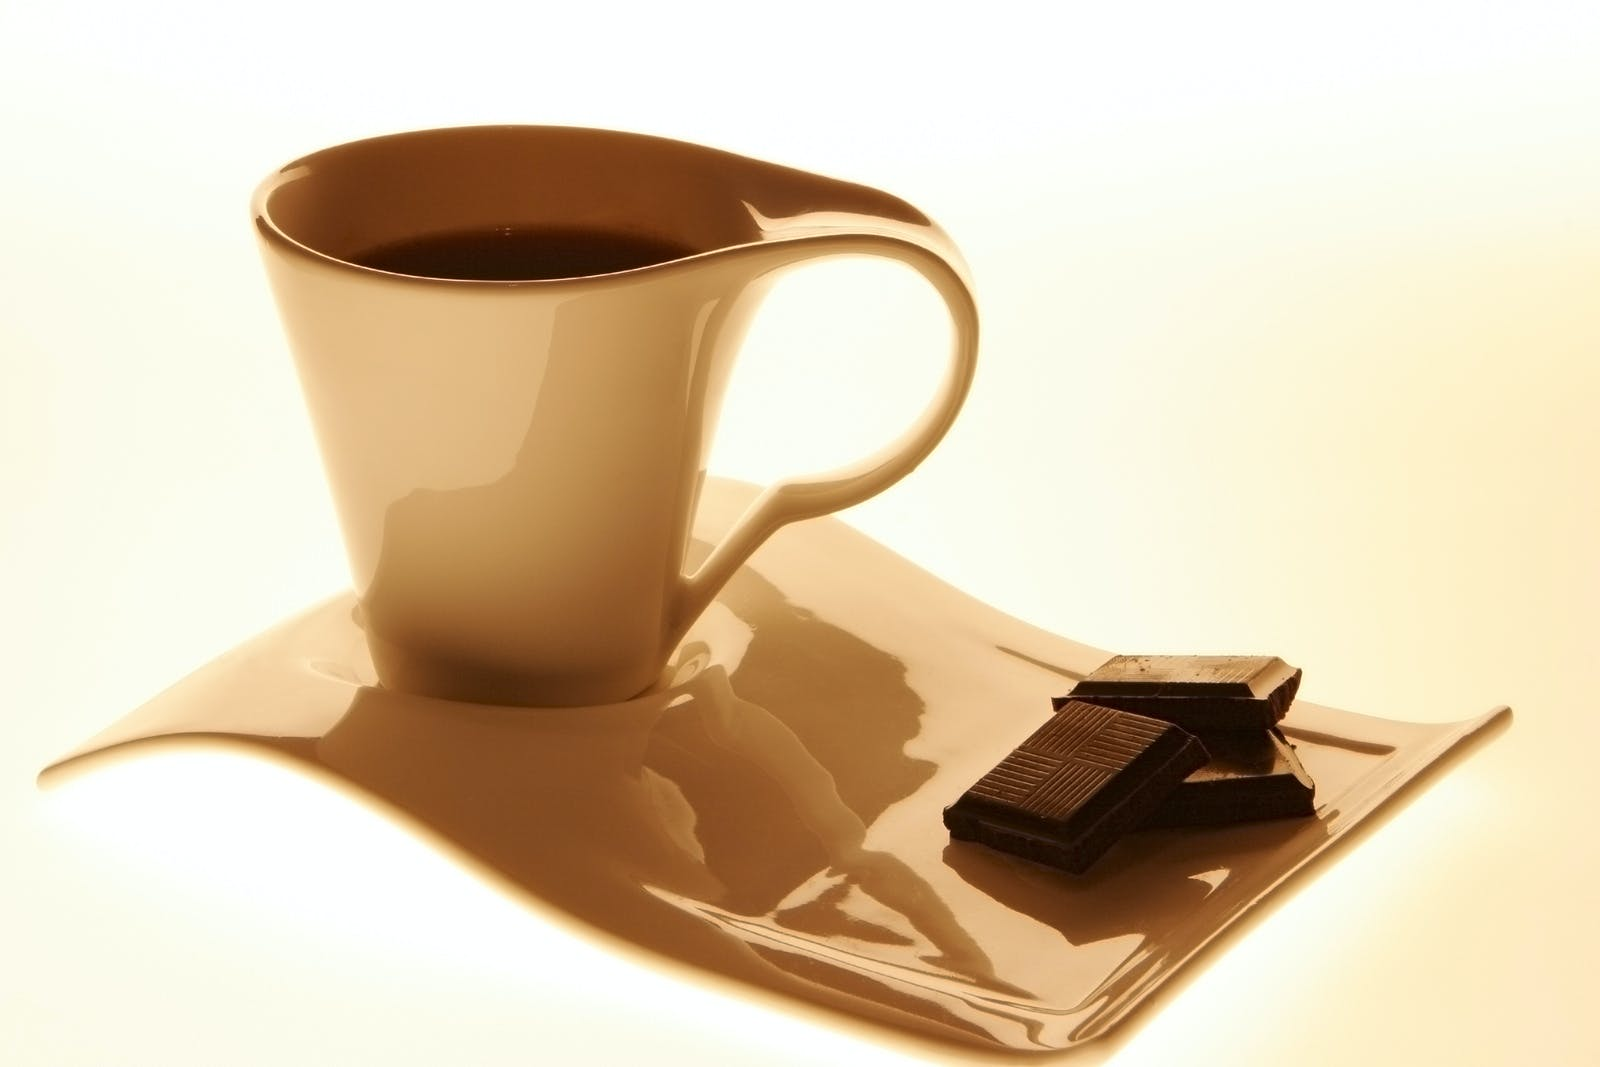 Coffee glass and the chocolate on a white background